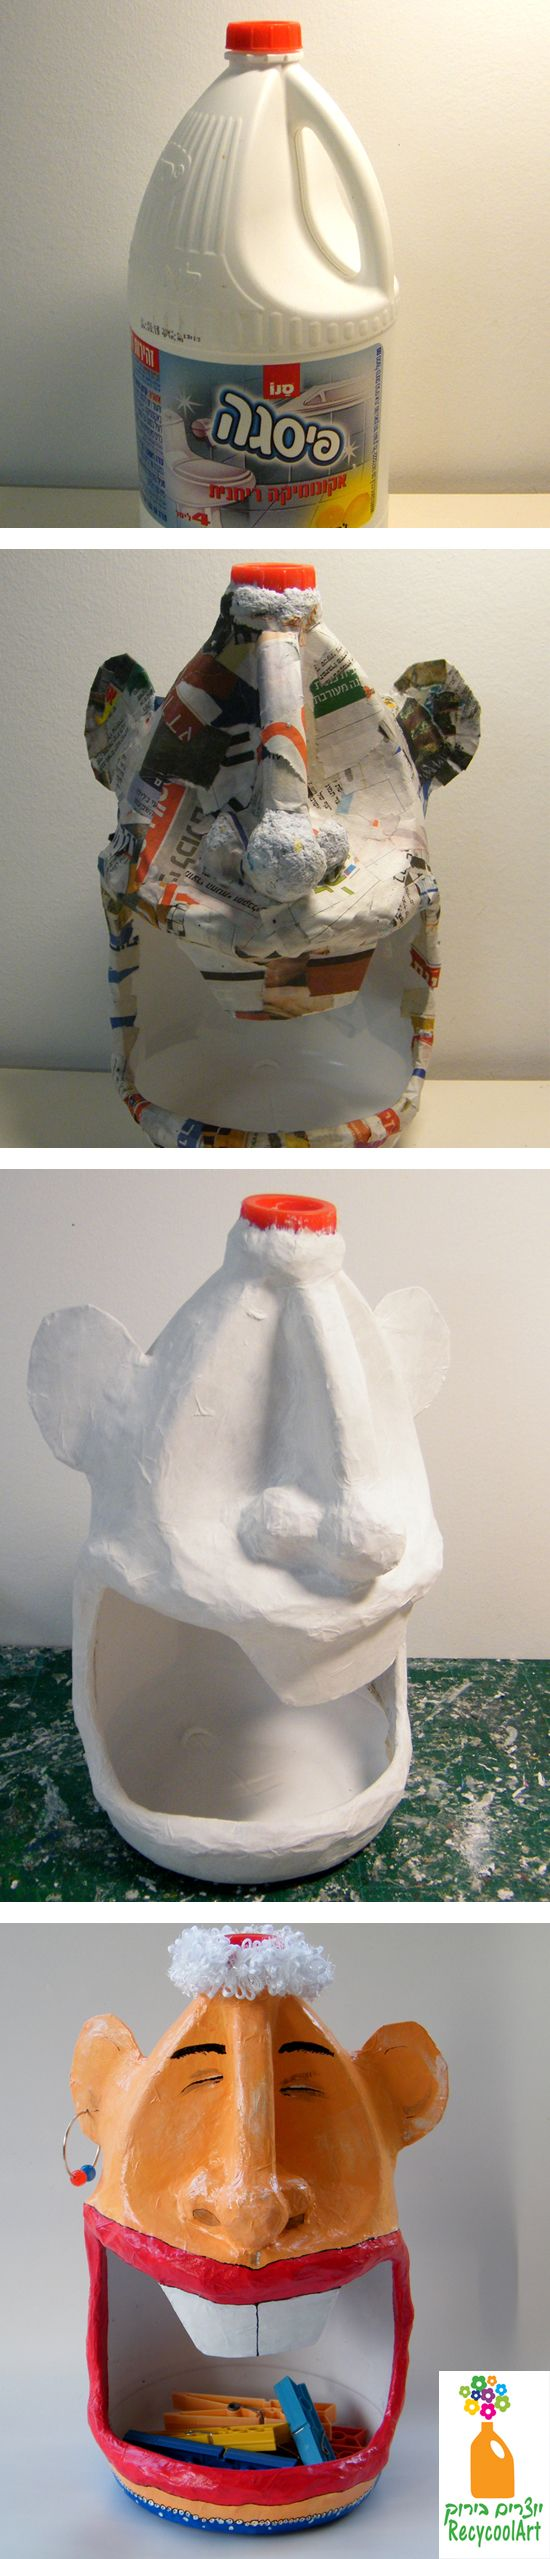 Recyclage de bouteille en plastique - An empty plastic bottle repurposed